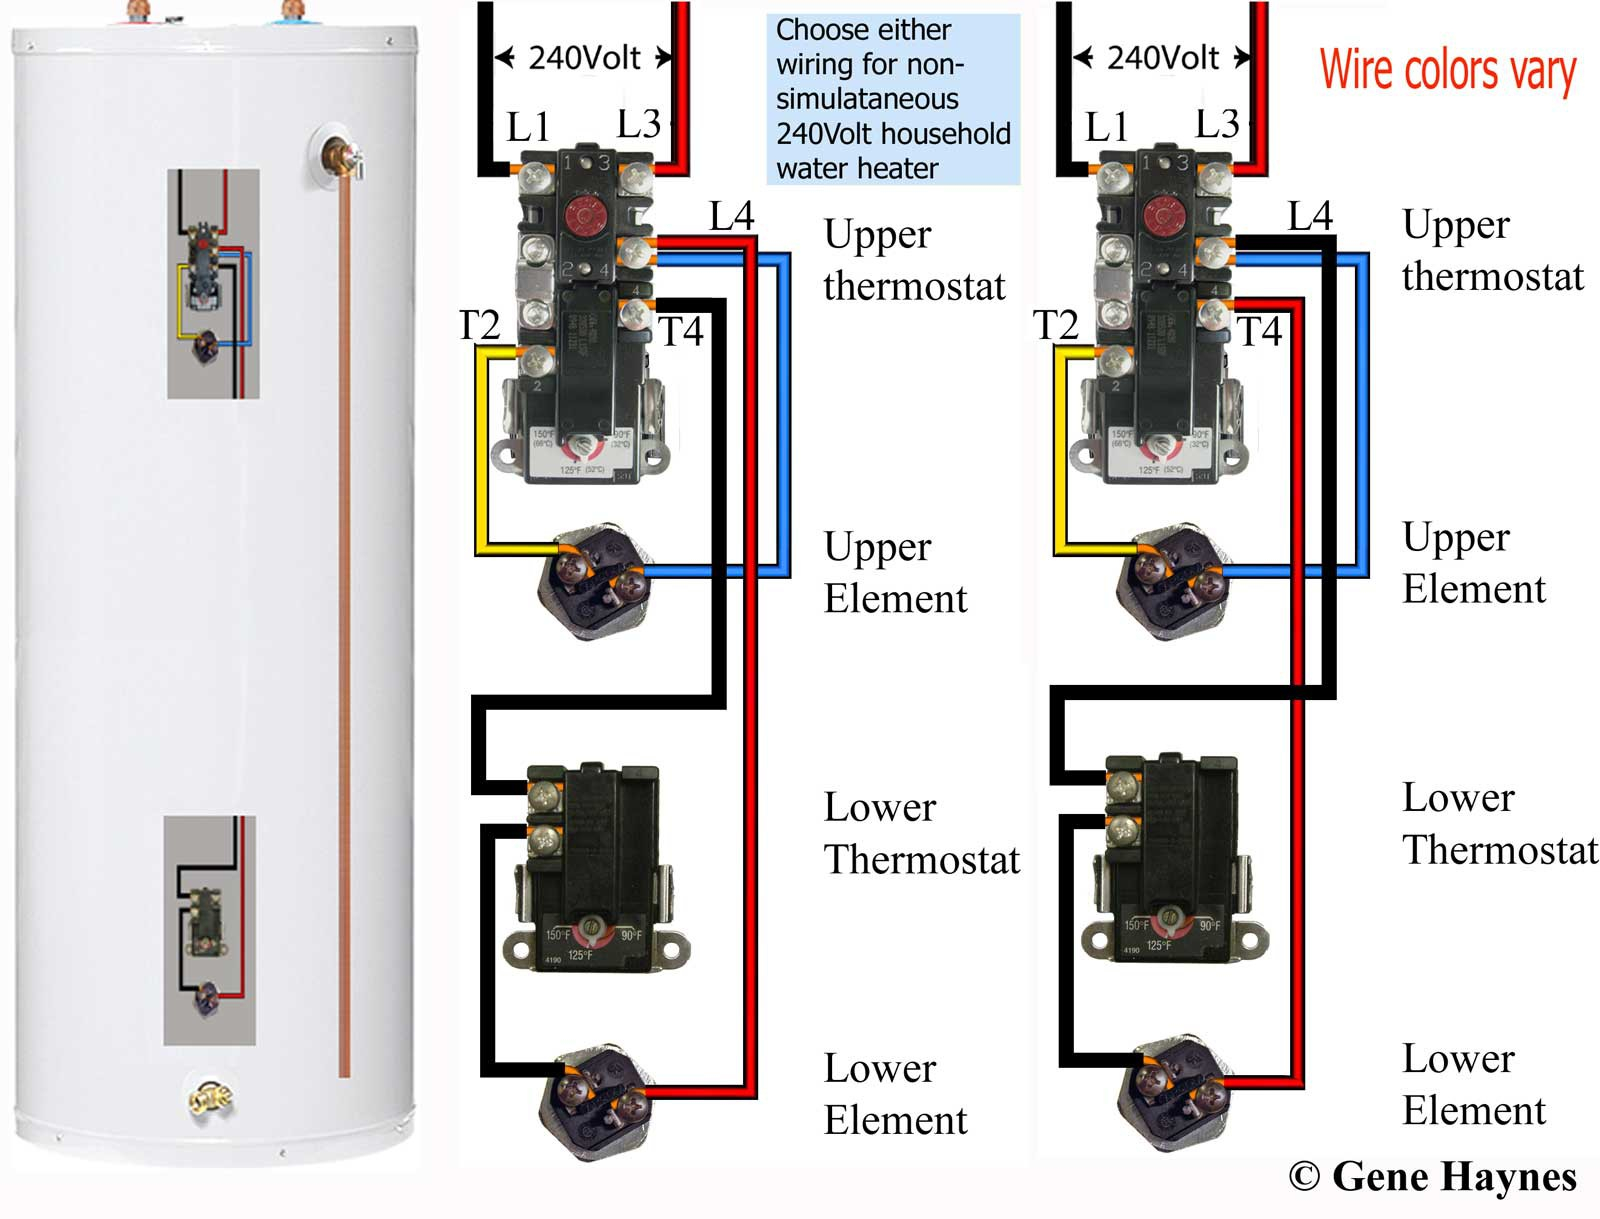 Water Heater Switch Wiring Diagram on water heater install diagram, water sensor switch wiring diagram, water heater parts diagram, water heater wires, water heater bypass valve, atwood water heater wiring diagram, water heater thermostat wiring diagram, suburban water heater wiring diagram, water pump switch wiring diagram, rv hot water heater diagram, 240v baseboard heater wiring diagram,